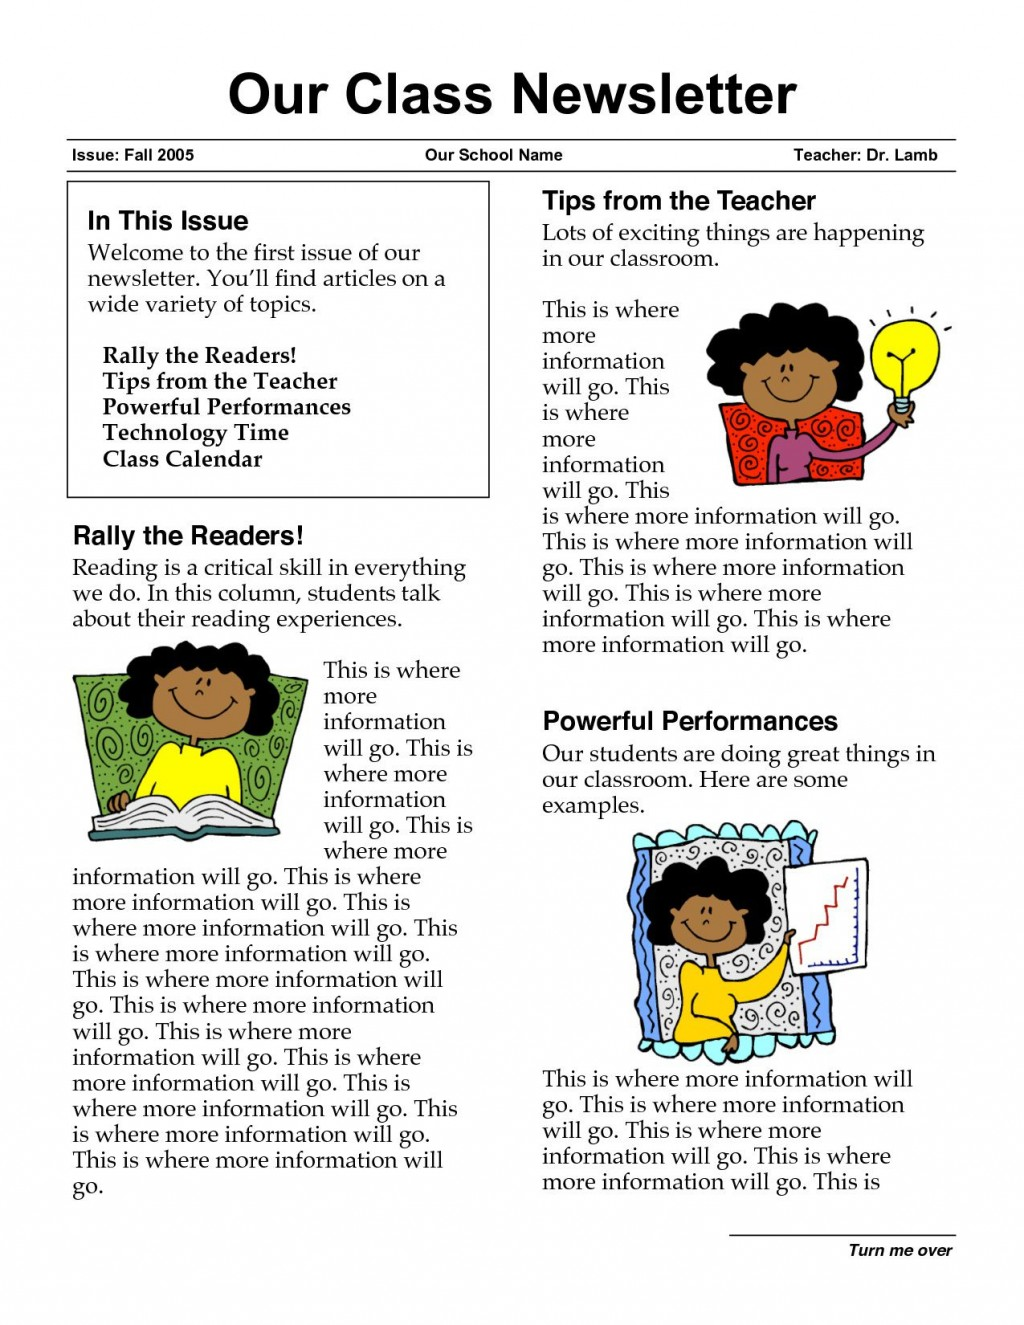 003 Fascinating Free Newsletter Template For Teacher Image  Downloadable Editable PreschoolLarge